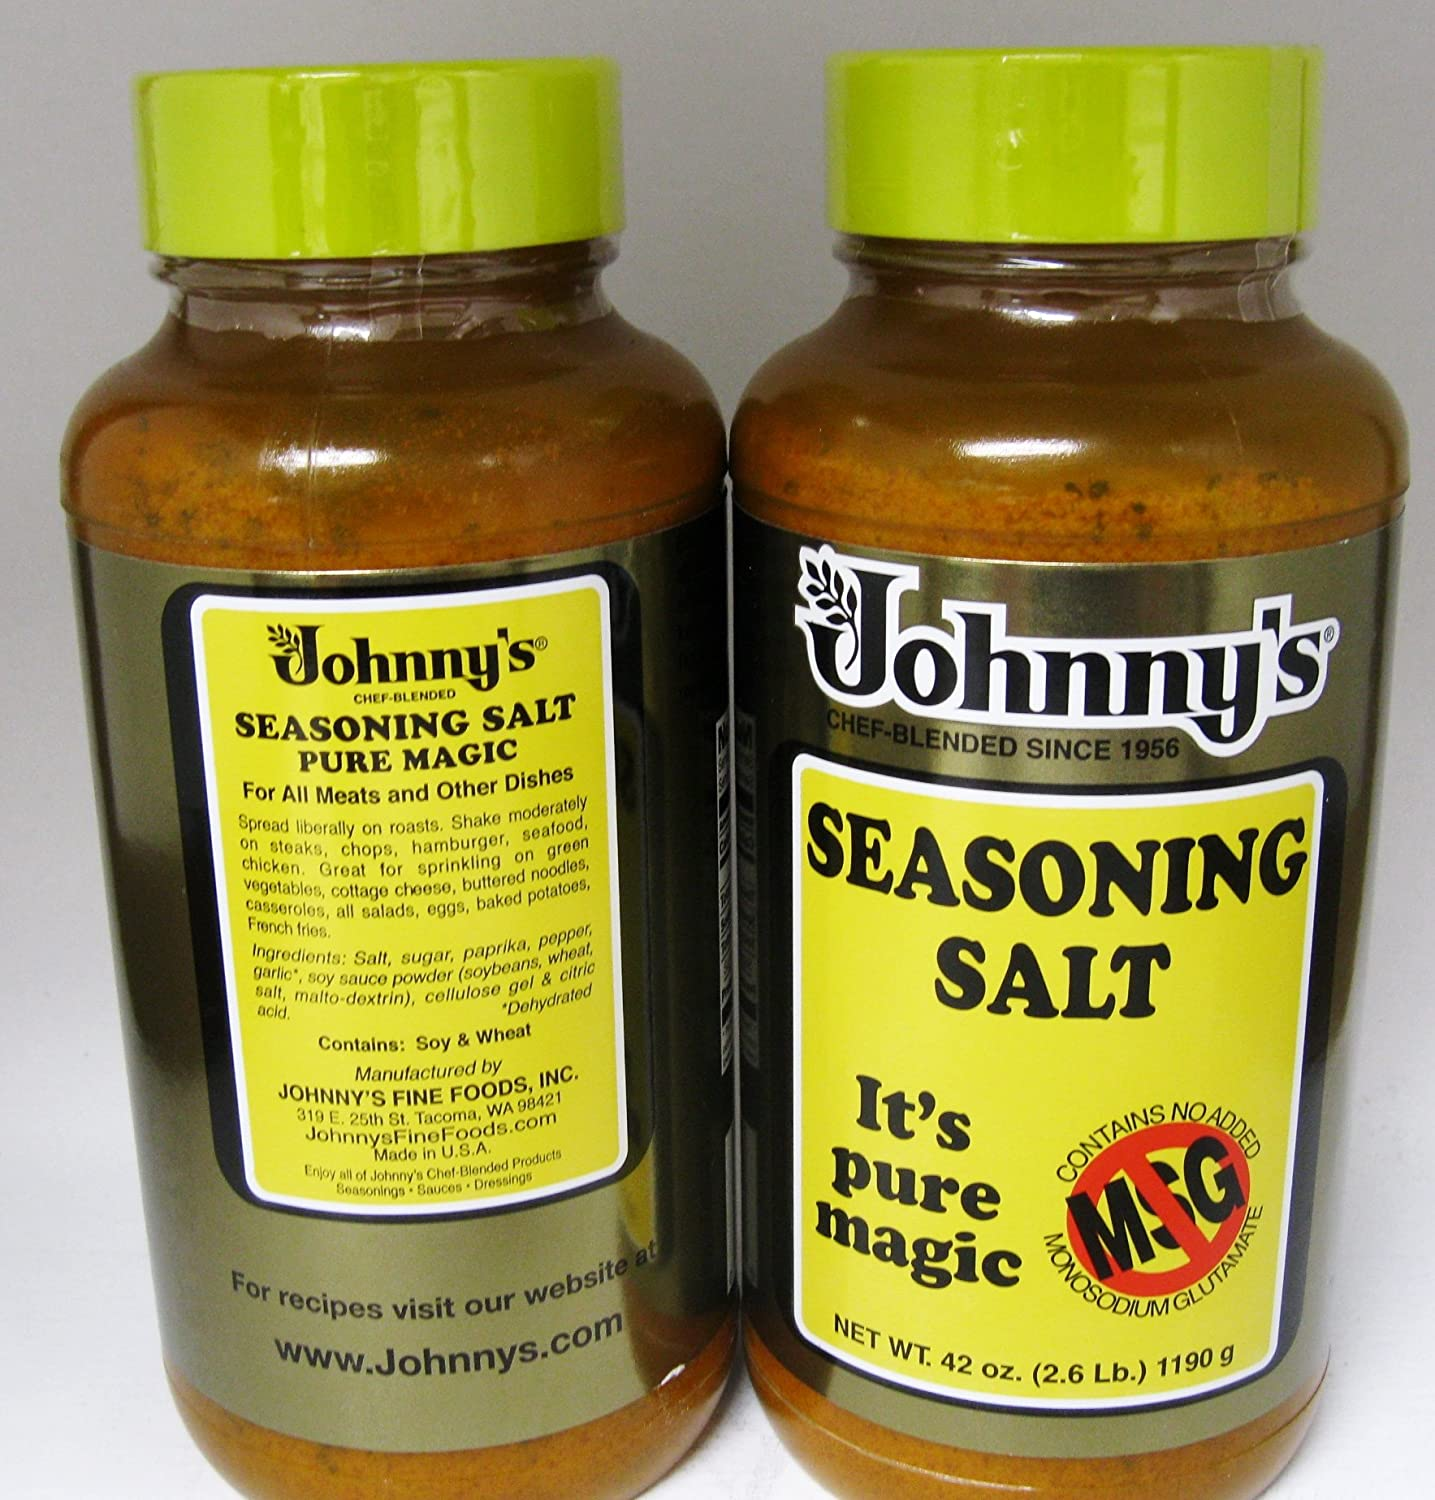 Seasoned Salt Brands Johnny 39 s Seasoning Salt no